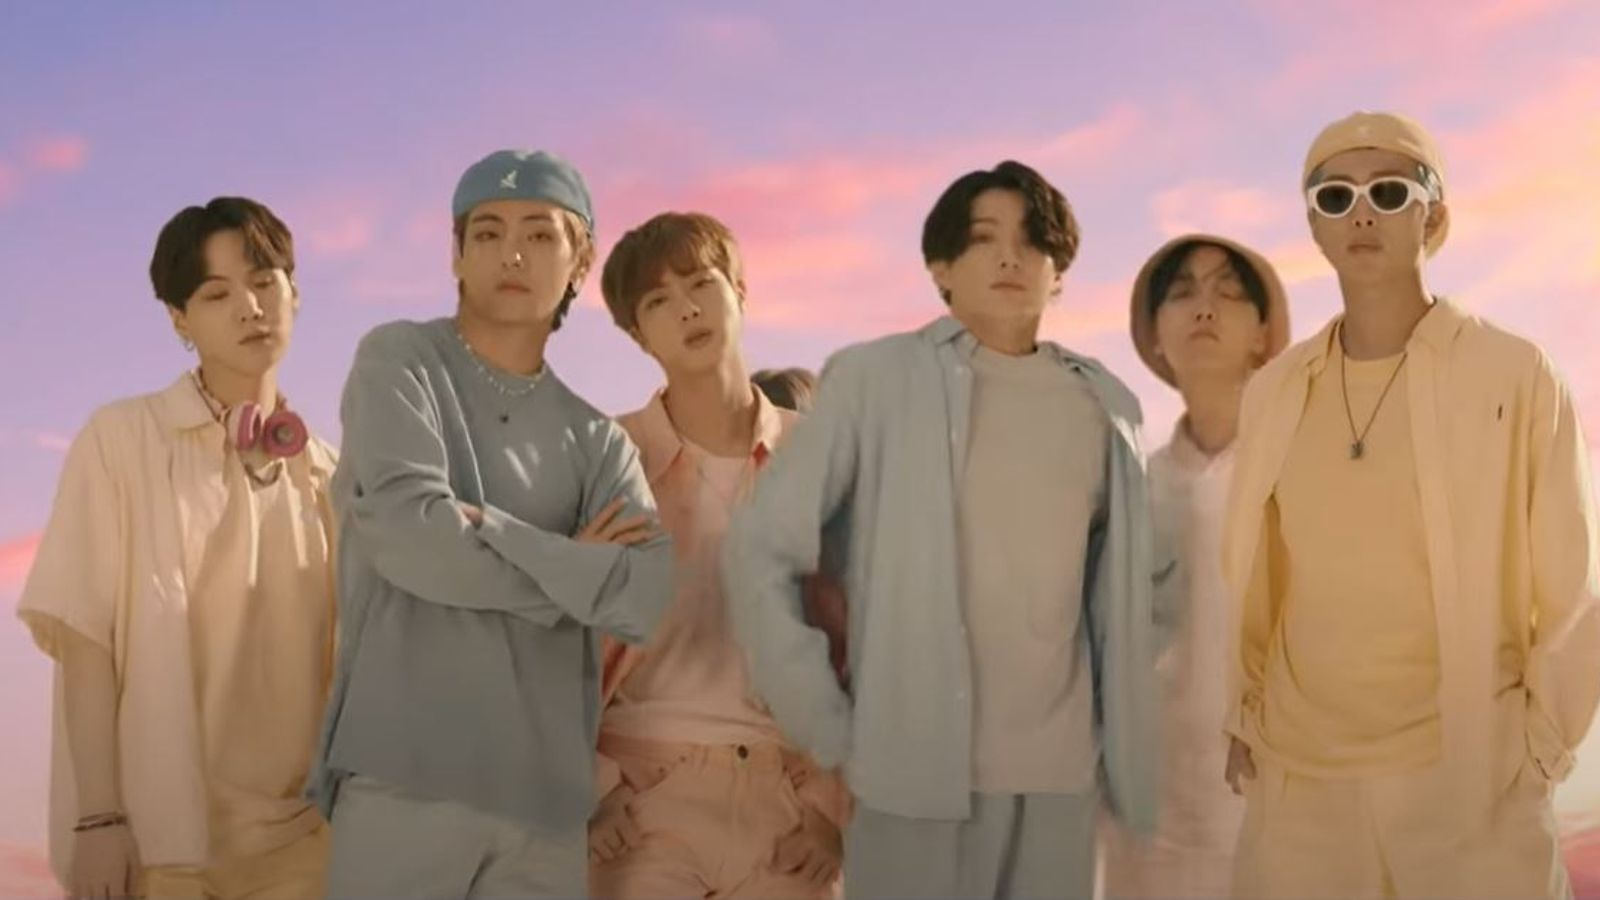 Bts Song Dynamite Smashes Youtube Record With More Than 100 Million Views In 24 Hours Ents Arts News Sky News Sign up for us bts army's weekly newsletter to stay up to date! bts song dynamite smashes youtube